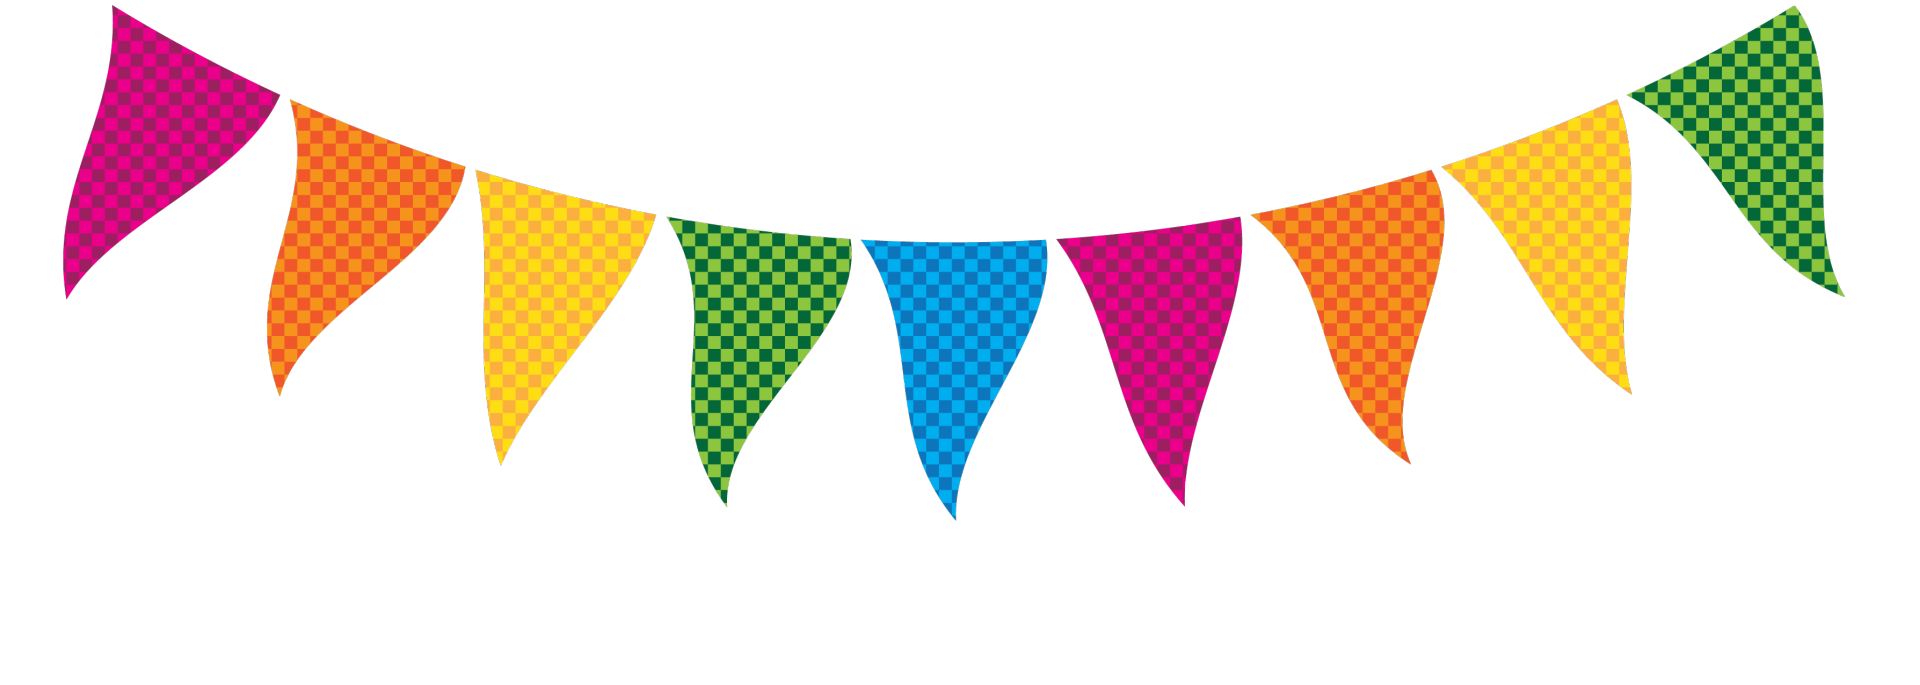 image freeuse stock Banner clipart. Fiesta .